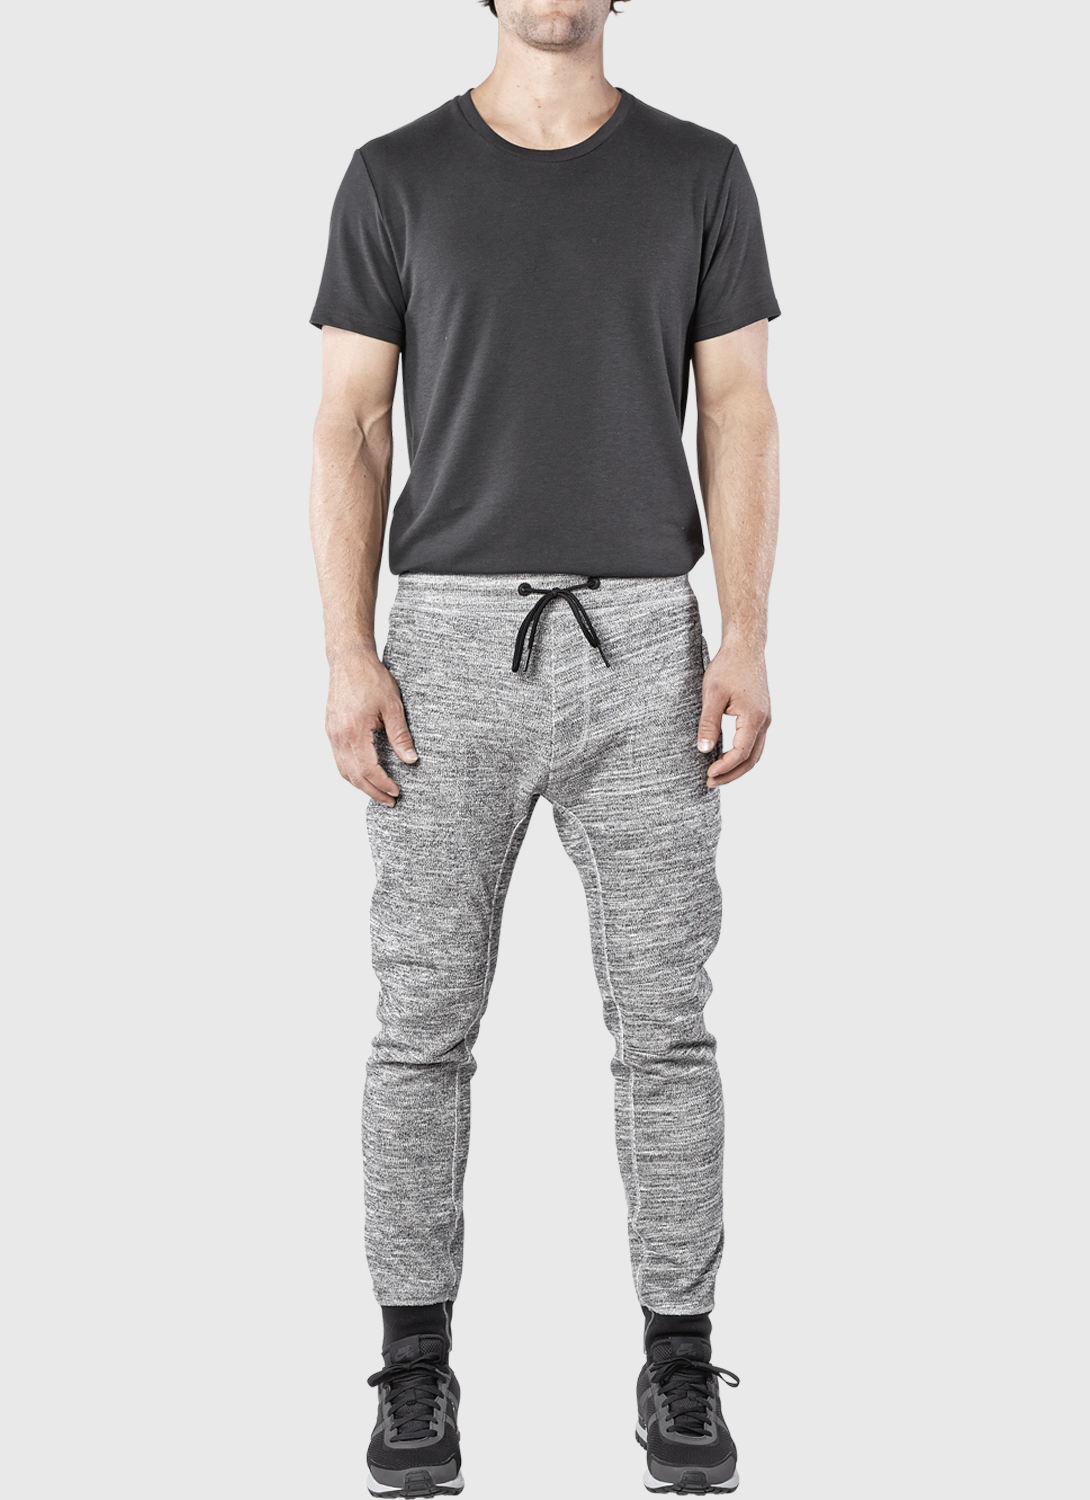 TechSweatpant_HeatherGray_eb20bed0-c182-4e5d-a076-79869e37a308.jpg